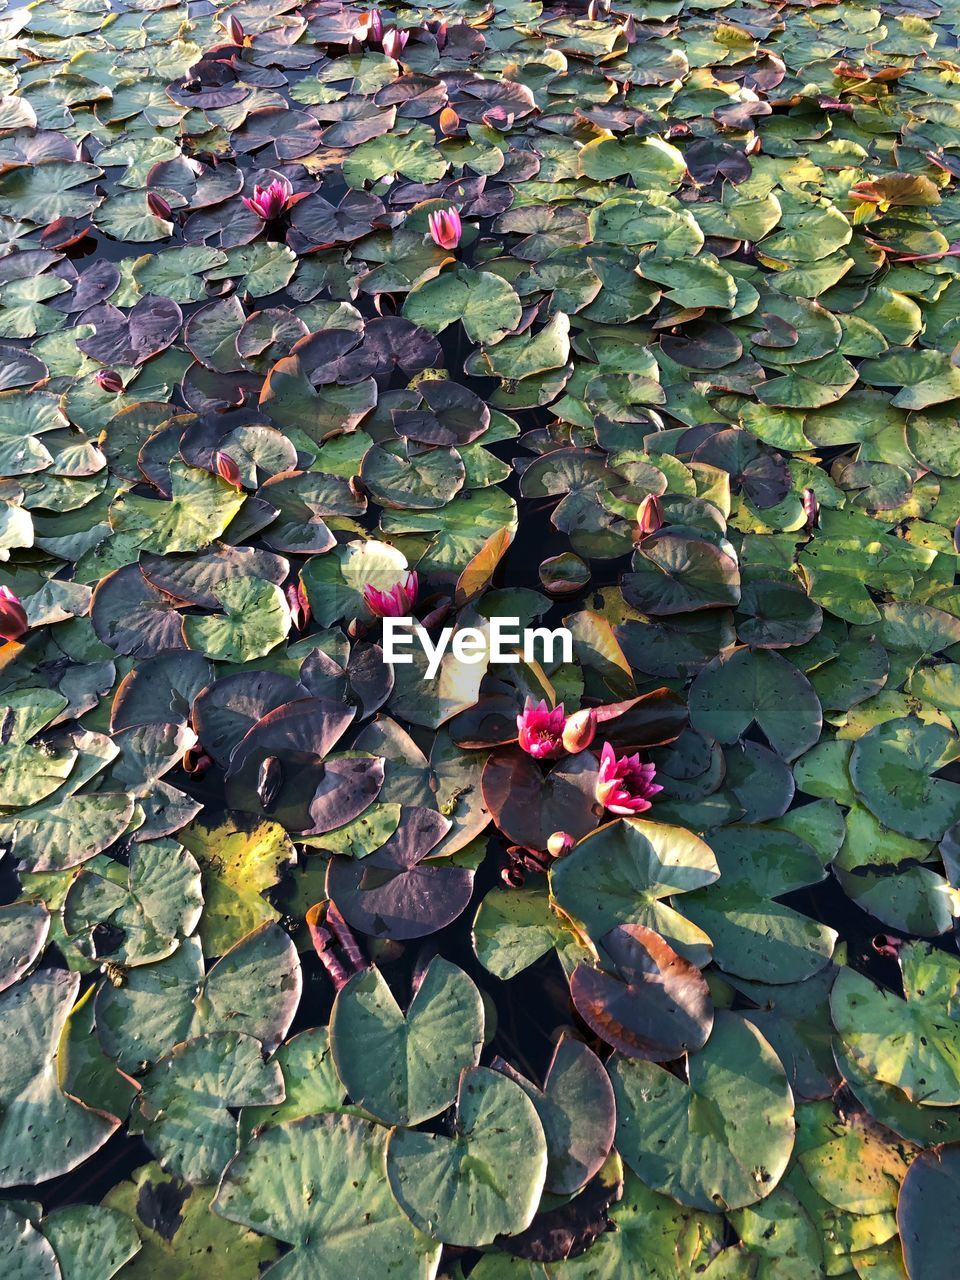 leaf, plant part, beauty in nature, plant, flower, growth, green color, nature, flowering plant, vulnerability, fragility, day, freshness, no people, high angle view, close-up, water lily, lake, petal, outdoors, floating on water, lotus water lily, flower head, leaves